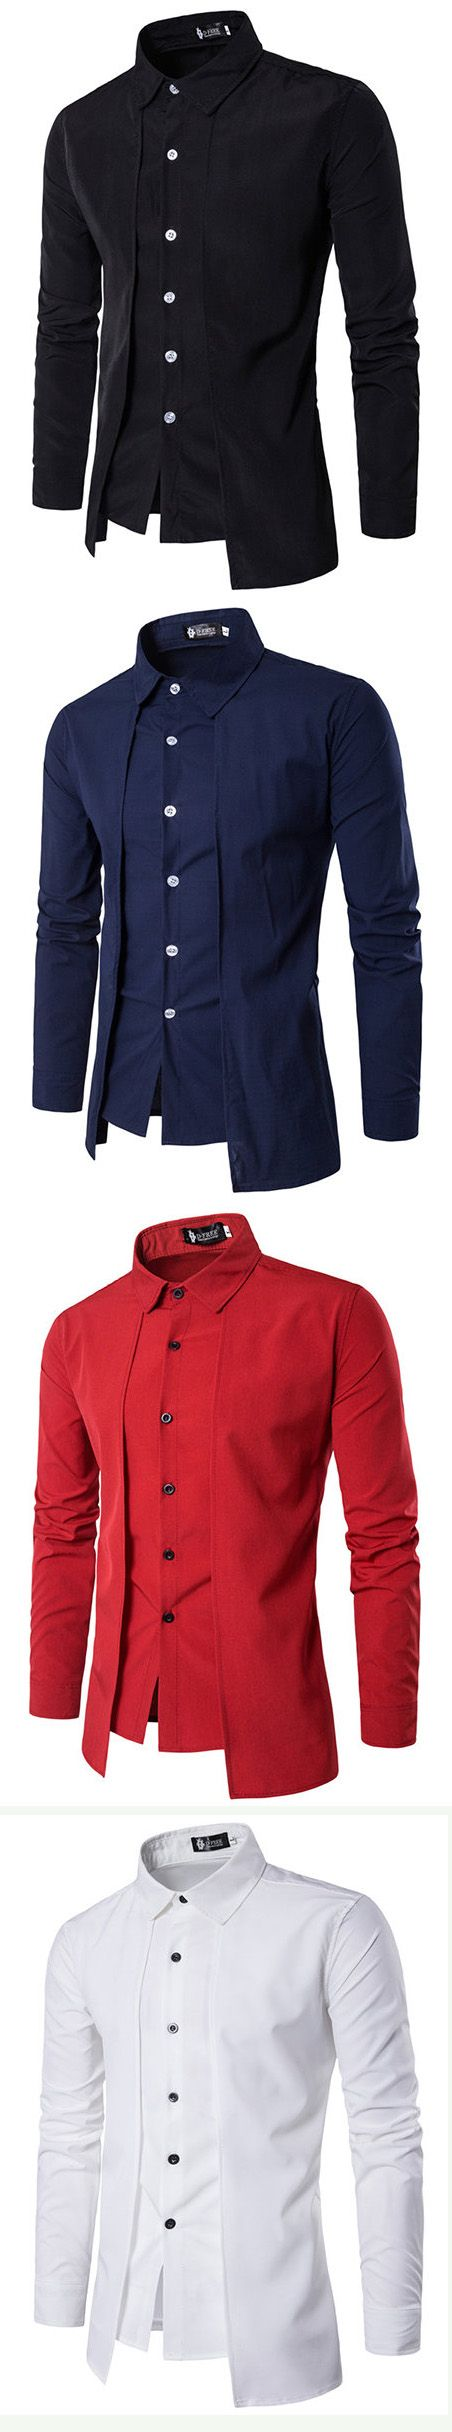 Fake two pieces simple style casual fashion designer shirts for men